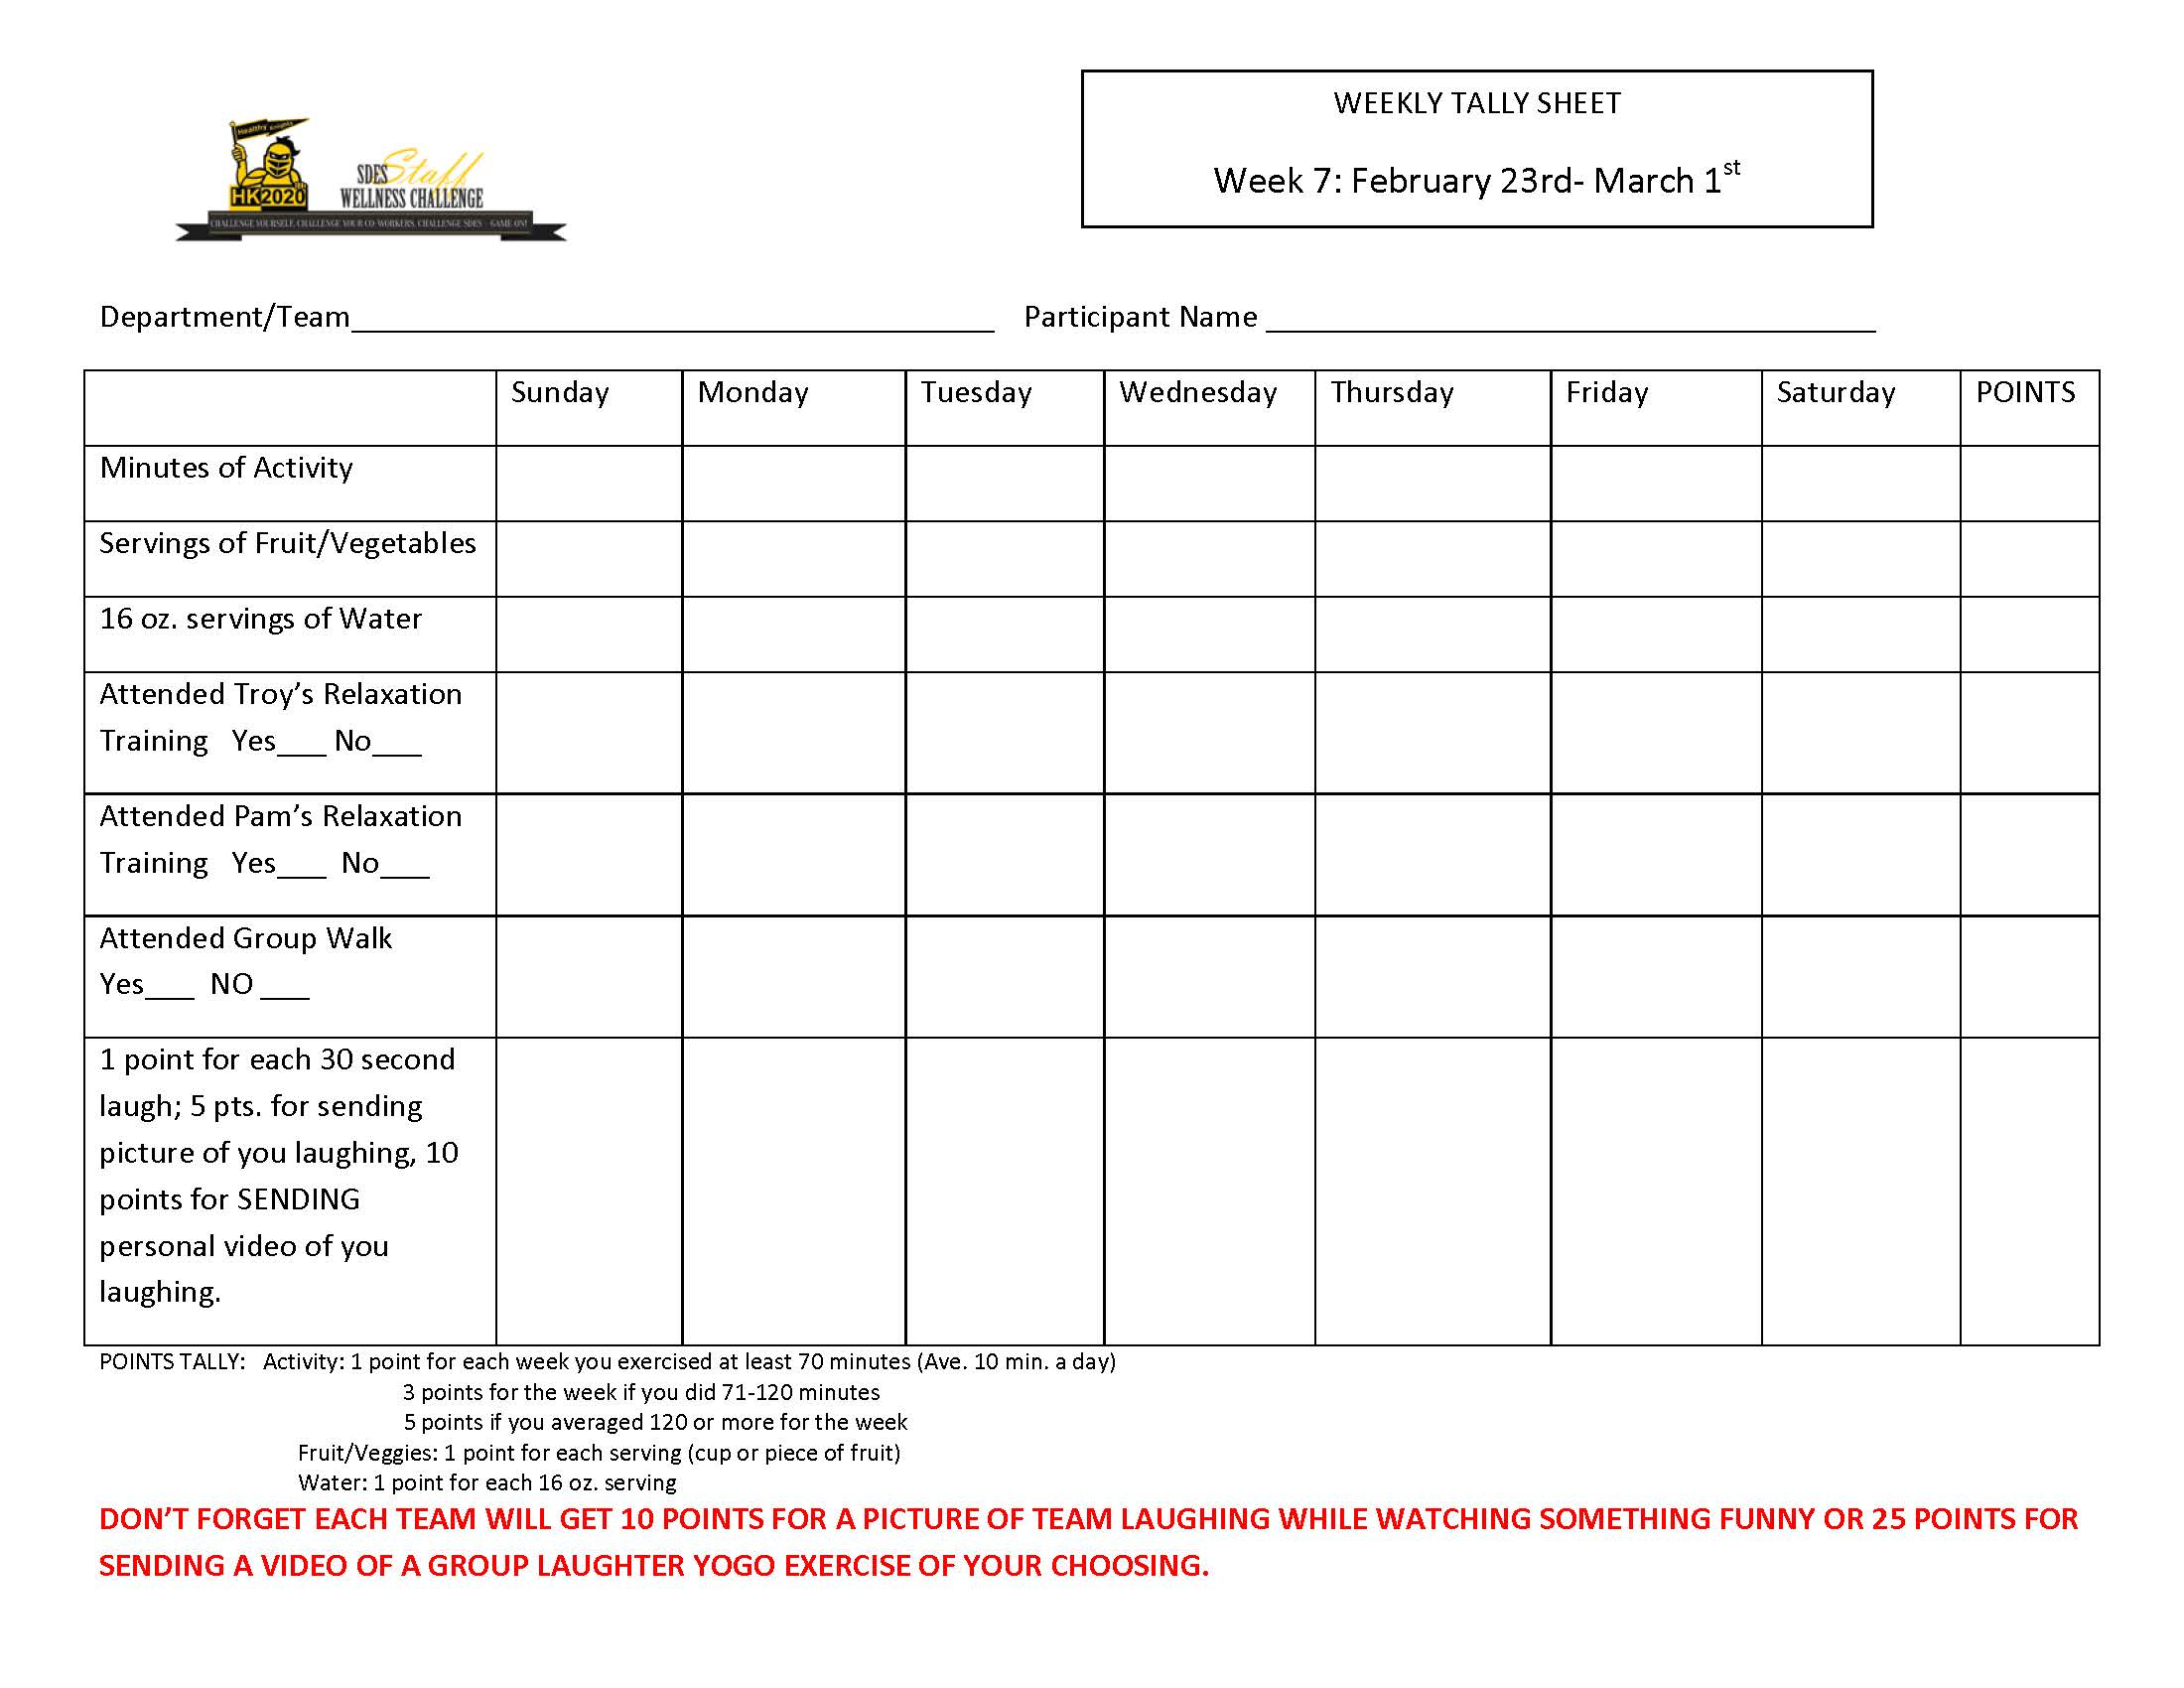 Tally sheet excel template choice image templates example free tally sheet excel template image collections templates example tally sheet excel template choice image templates example alramifo Choice Image